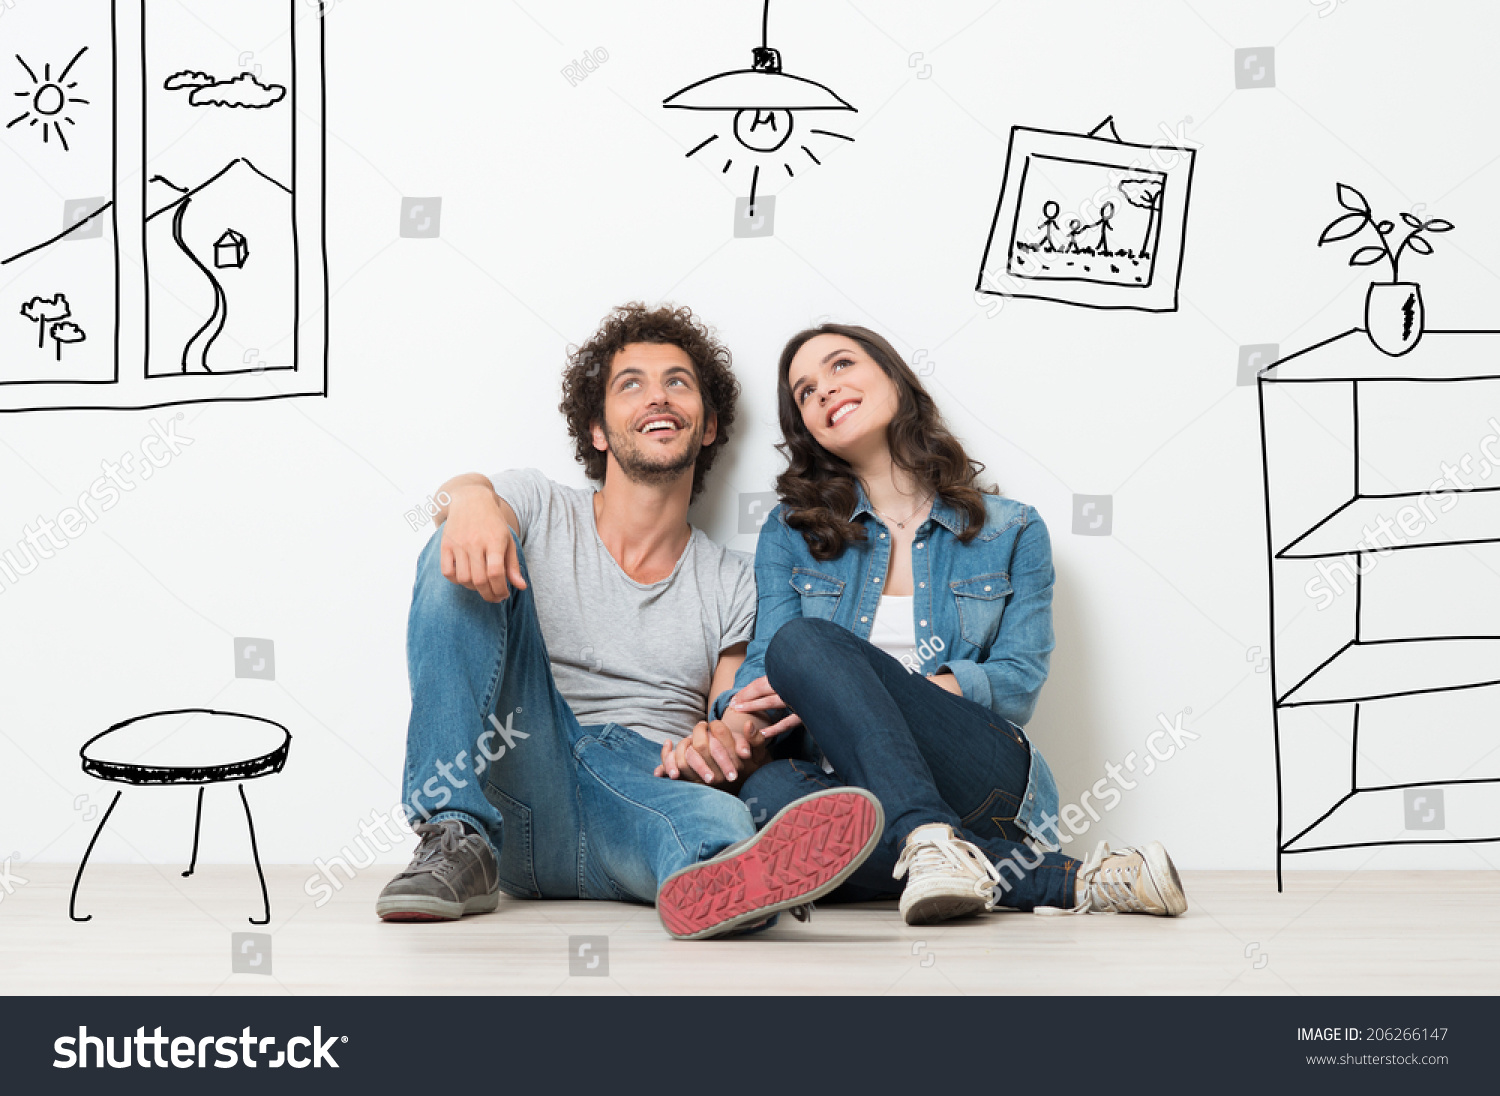 Online image photo editor shutterstock editor - Young couple modern homes ...